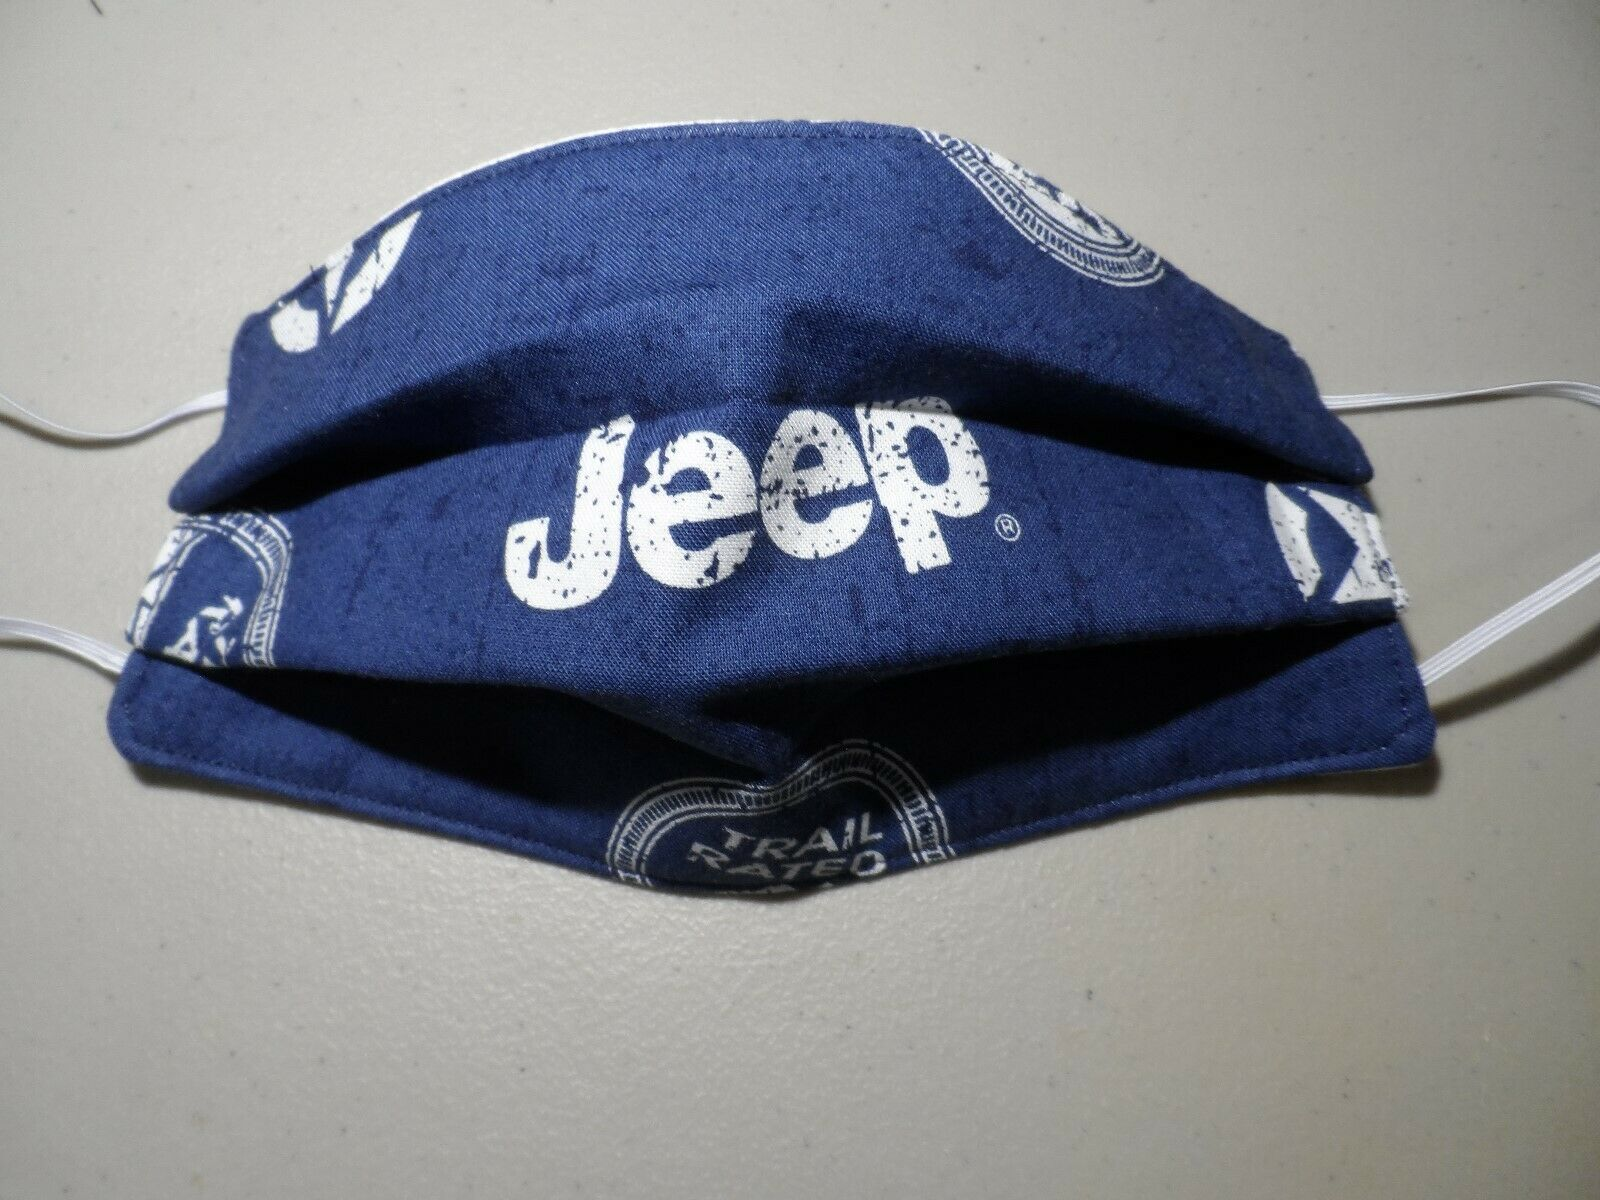 Cool jeep face mask Navy Blue Jeep Adult Face Mask Made in the USA